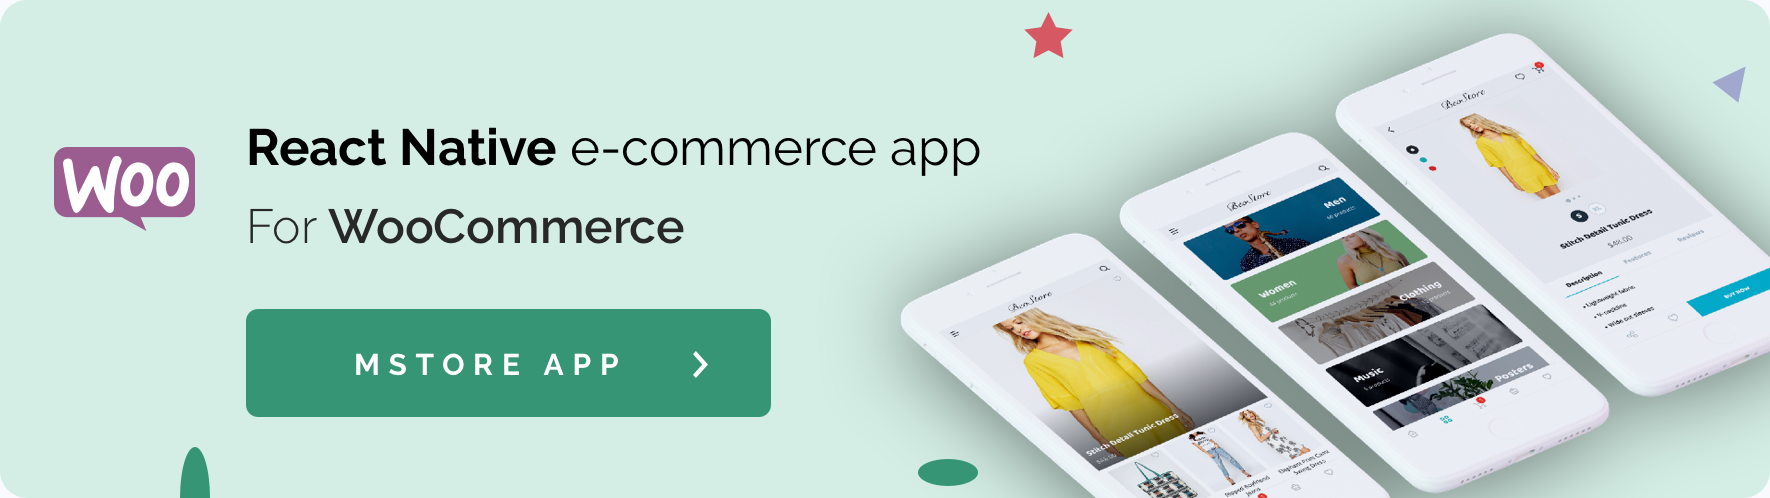 MStore Multi Vendor - Complete React Native template for WooCommerce - 25